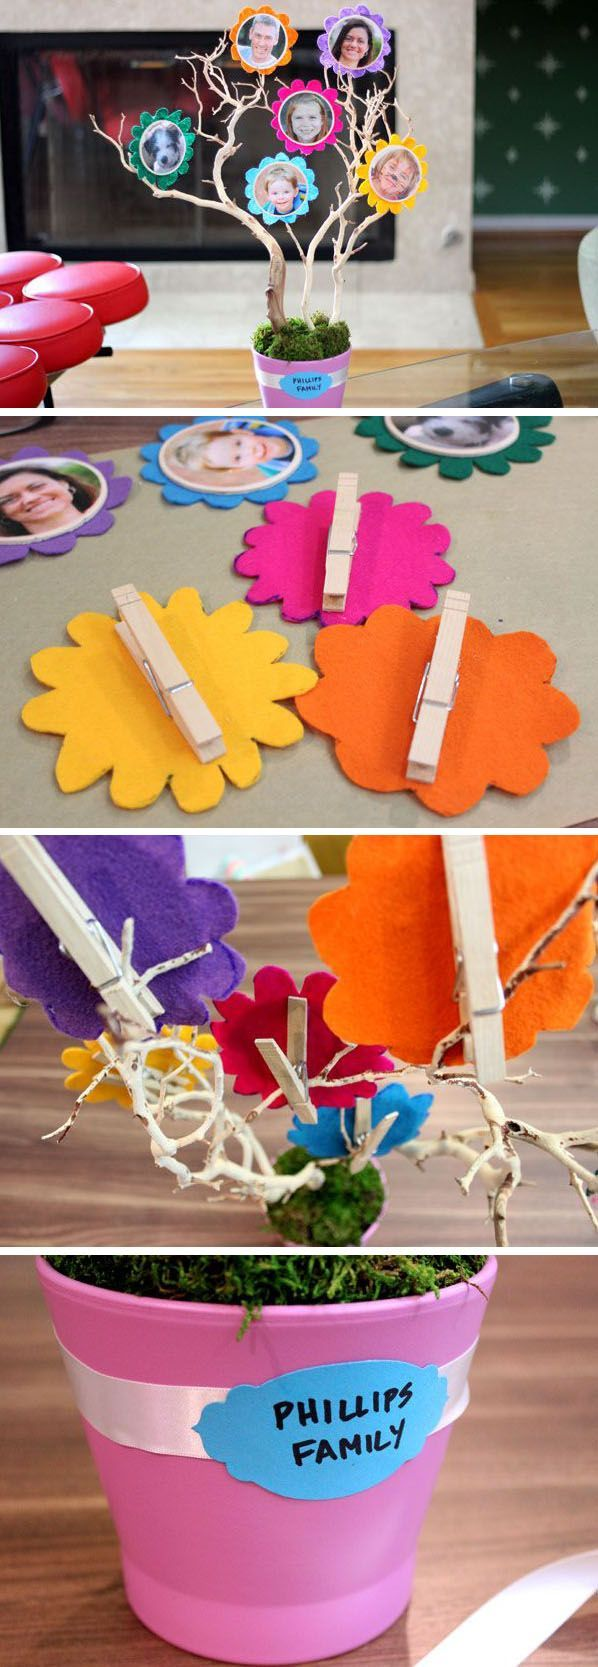 3d Diy Family Tree Craft Ideas Crafts Crafts For Kids Family